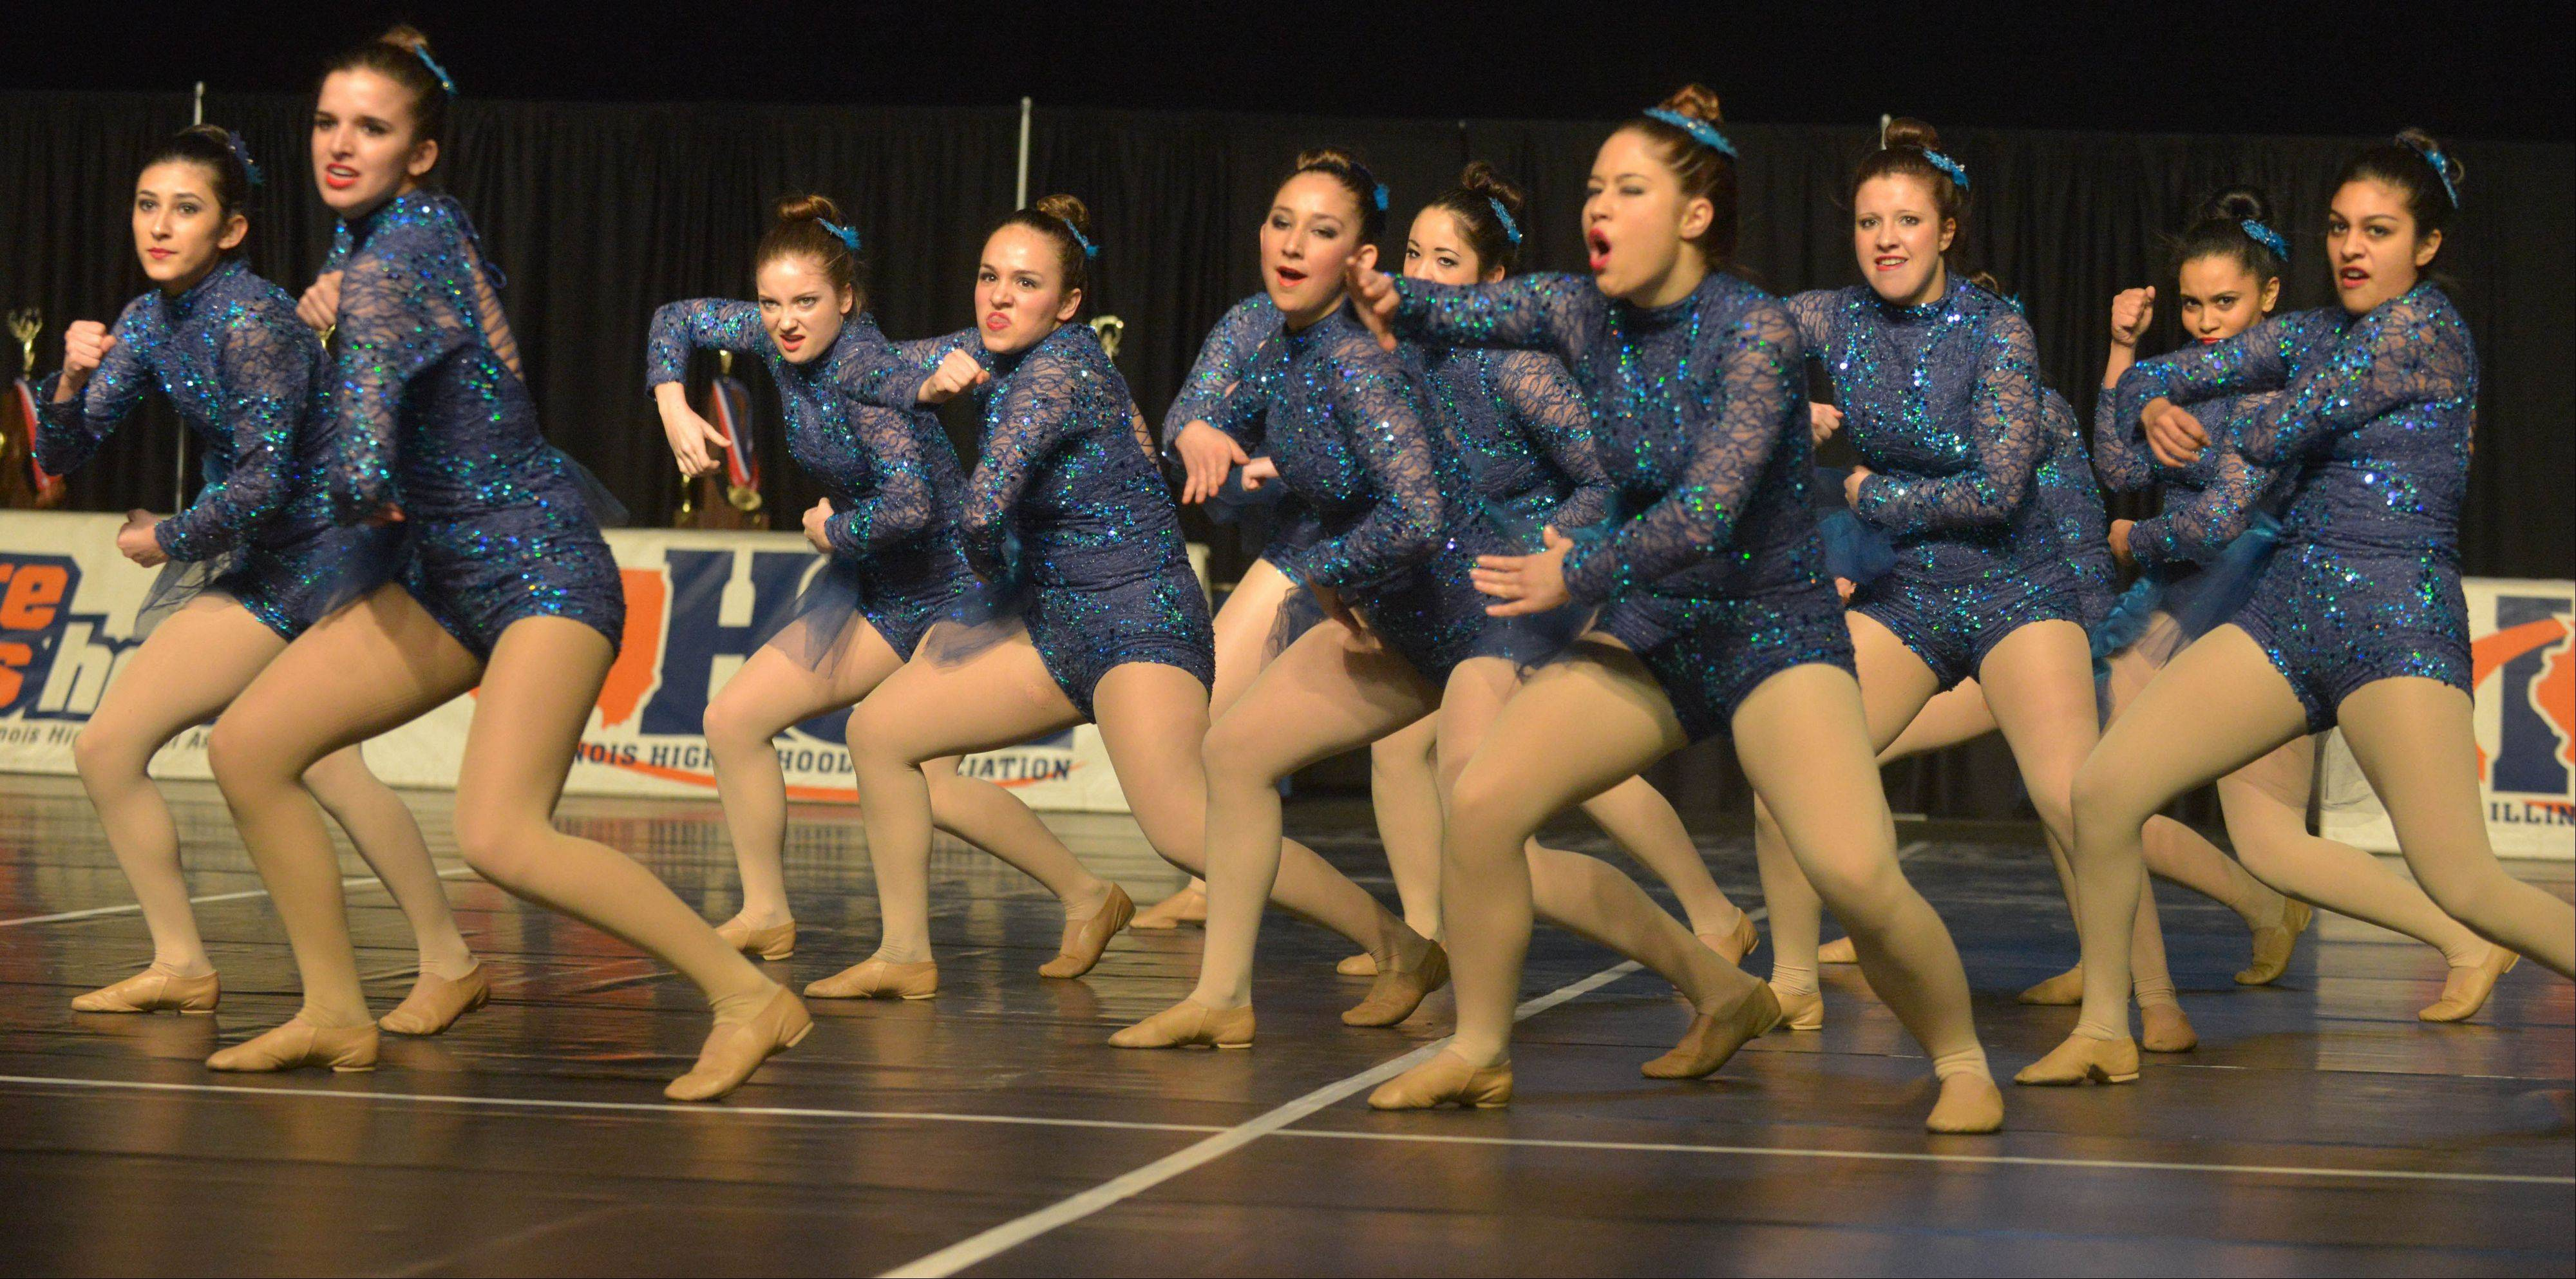 The Aurora Central Catholic High School team performs in Friday's preliminaries.